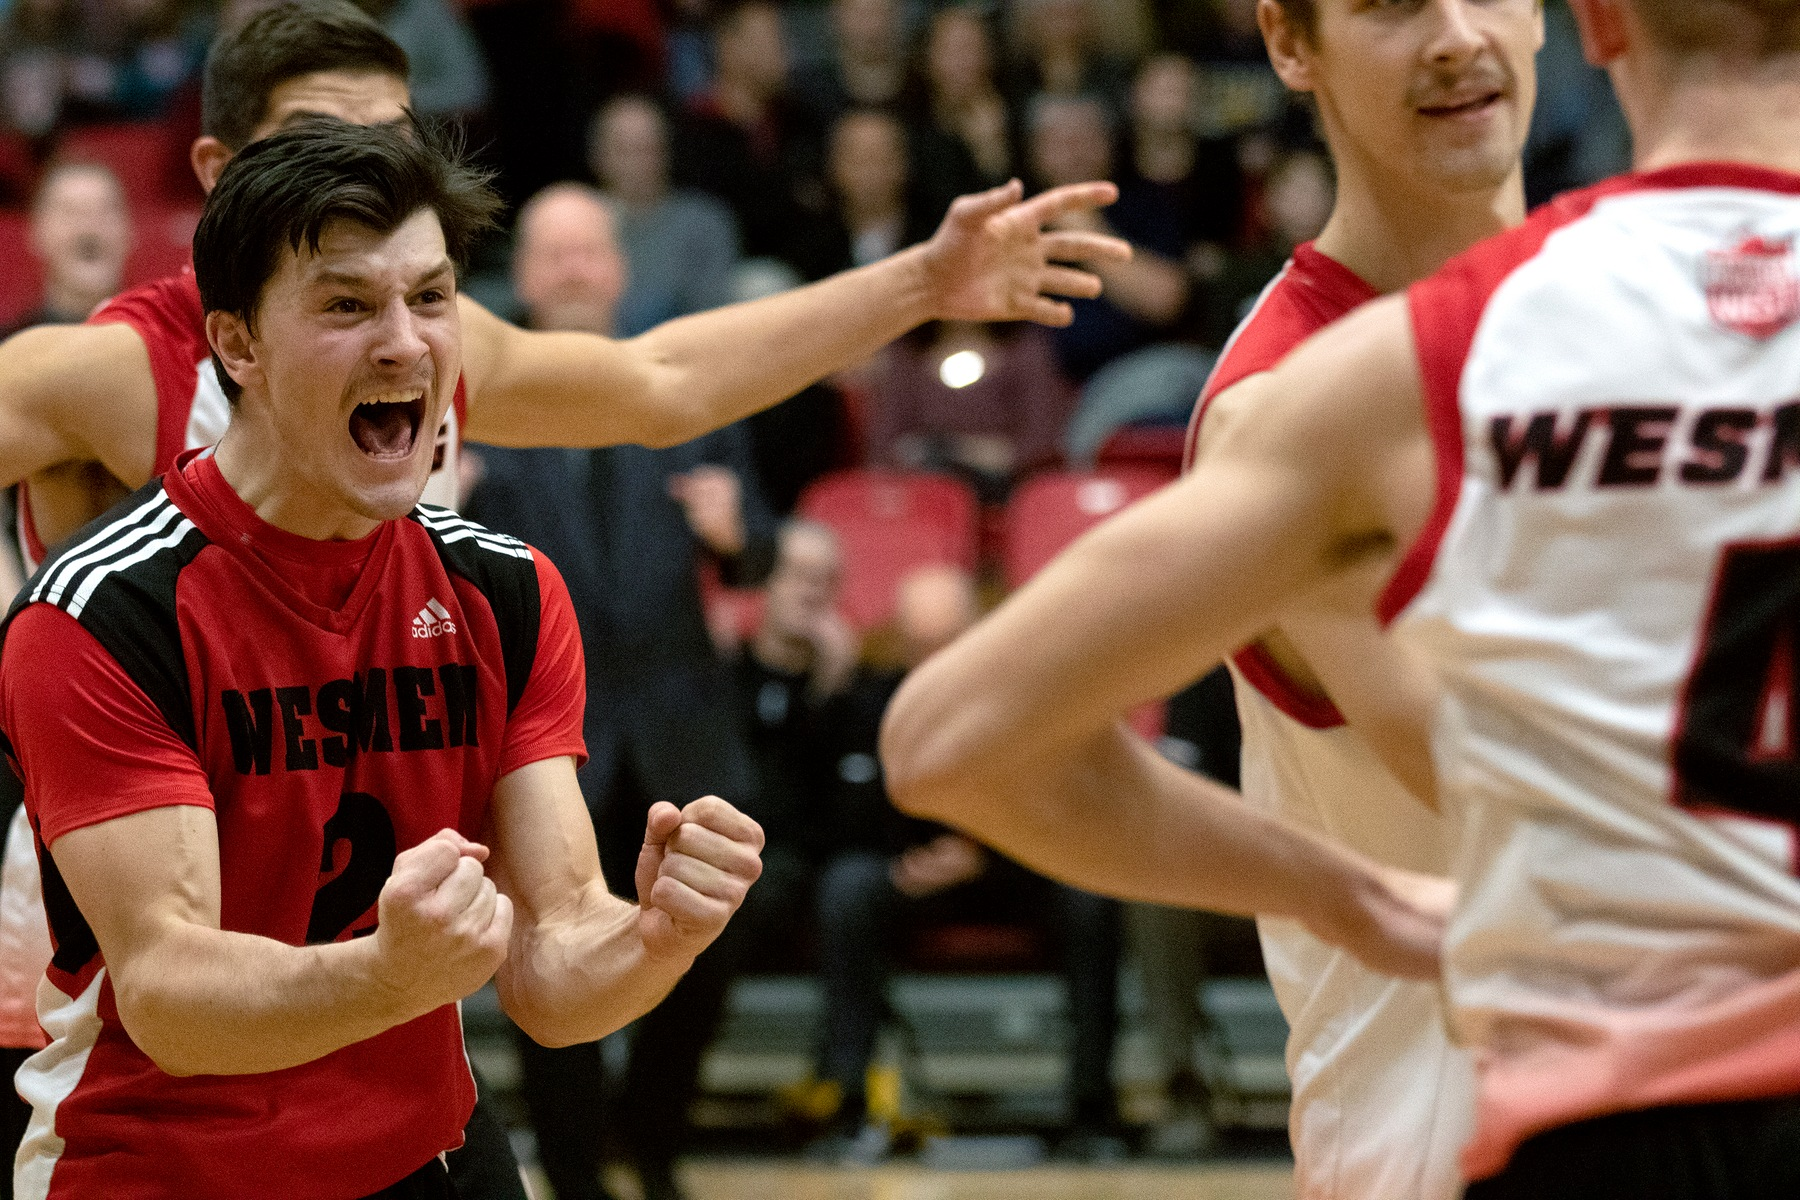 Darian Picklyk celebrates a point with his teammates during the Winnipeg Wesmen's five-set win over the Brandon Bobcats on Saturday, Nov. 9, 2019. (David Larkins/Wesmen Athletics)